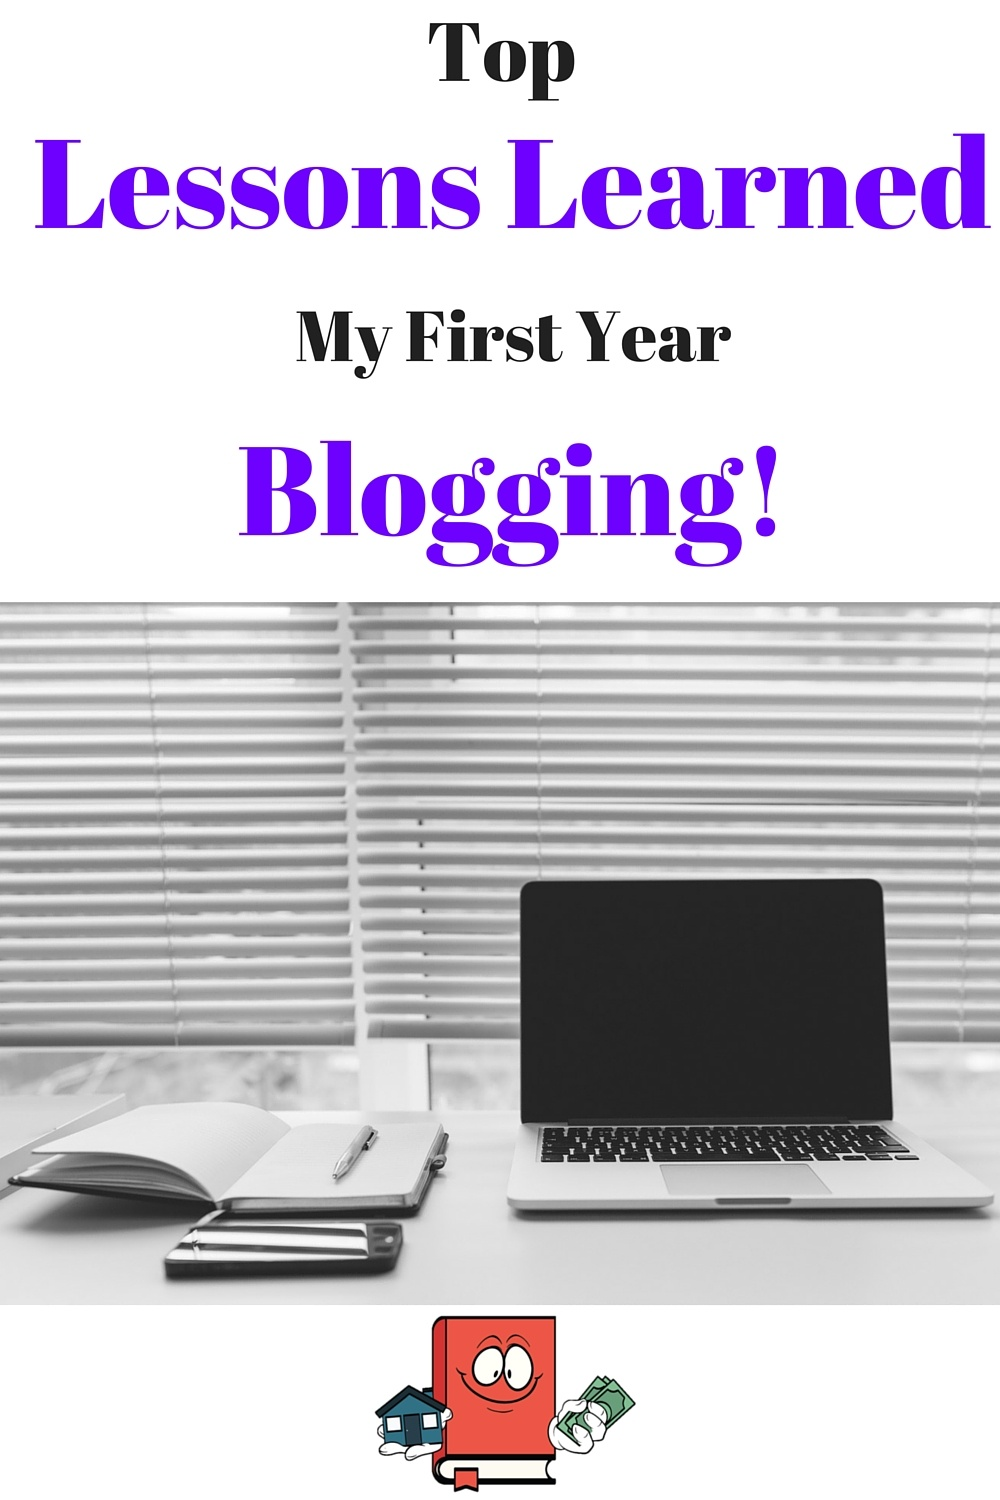 Top Lessons learned first year blogging